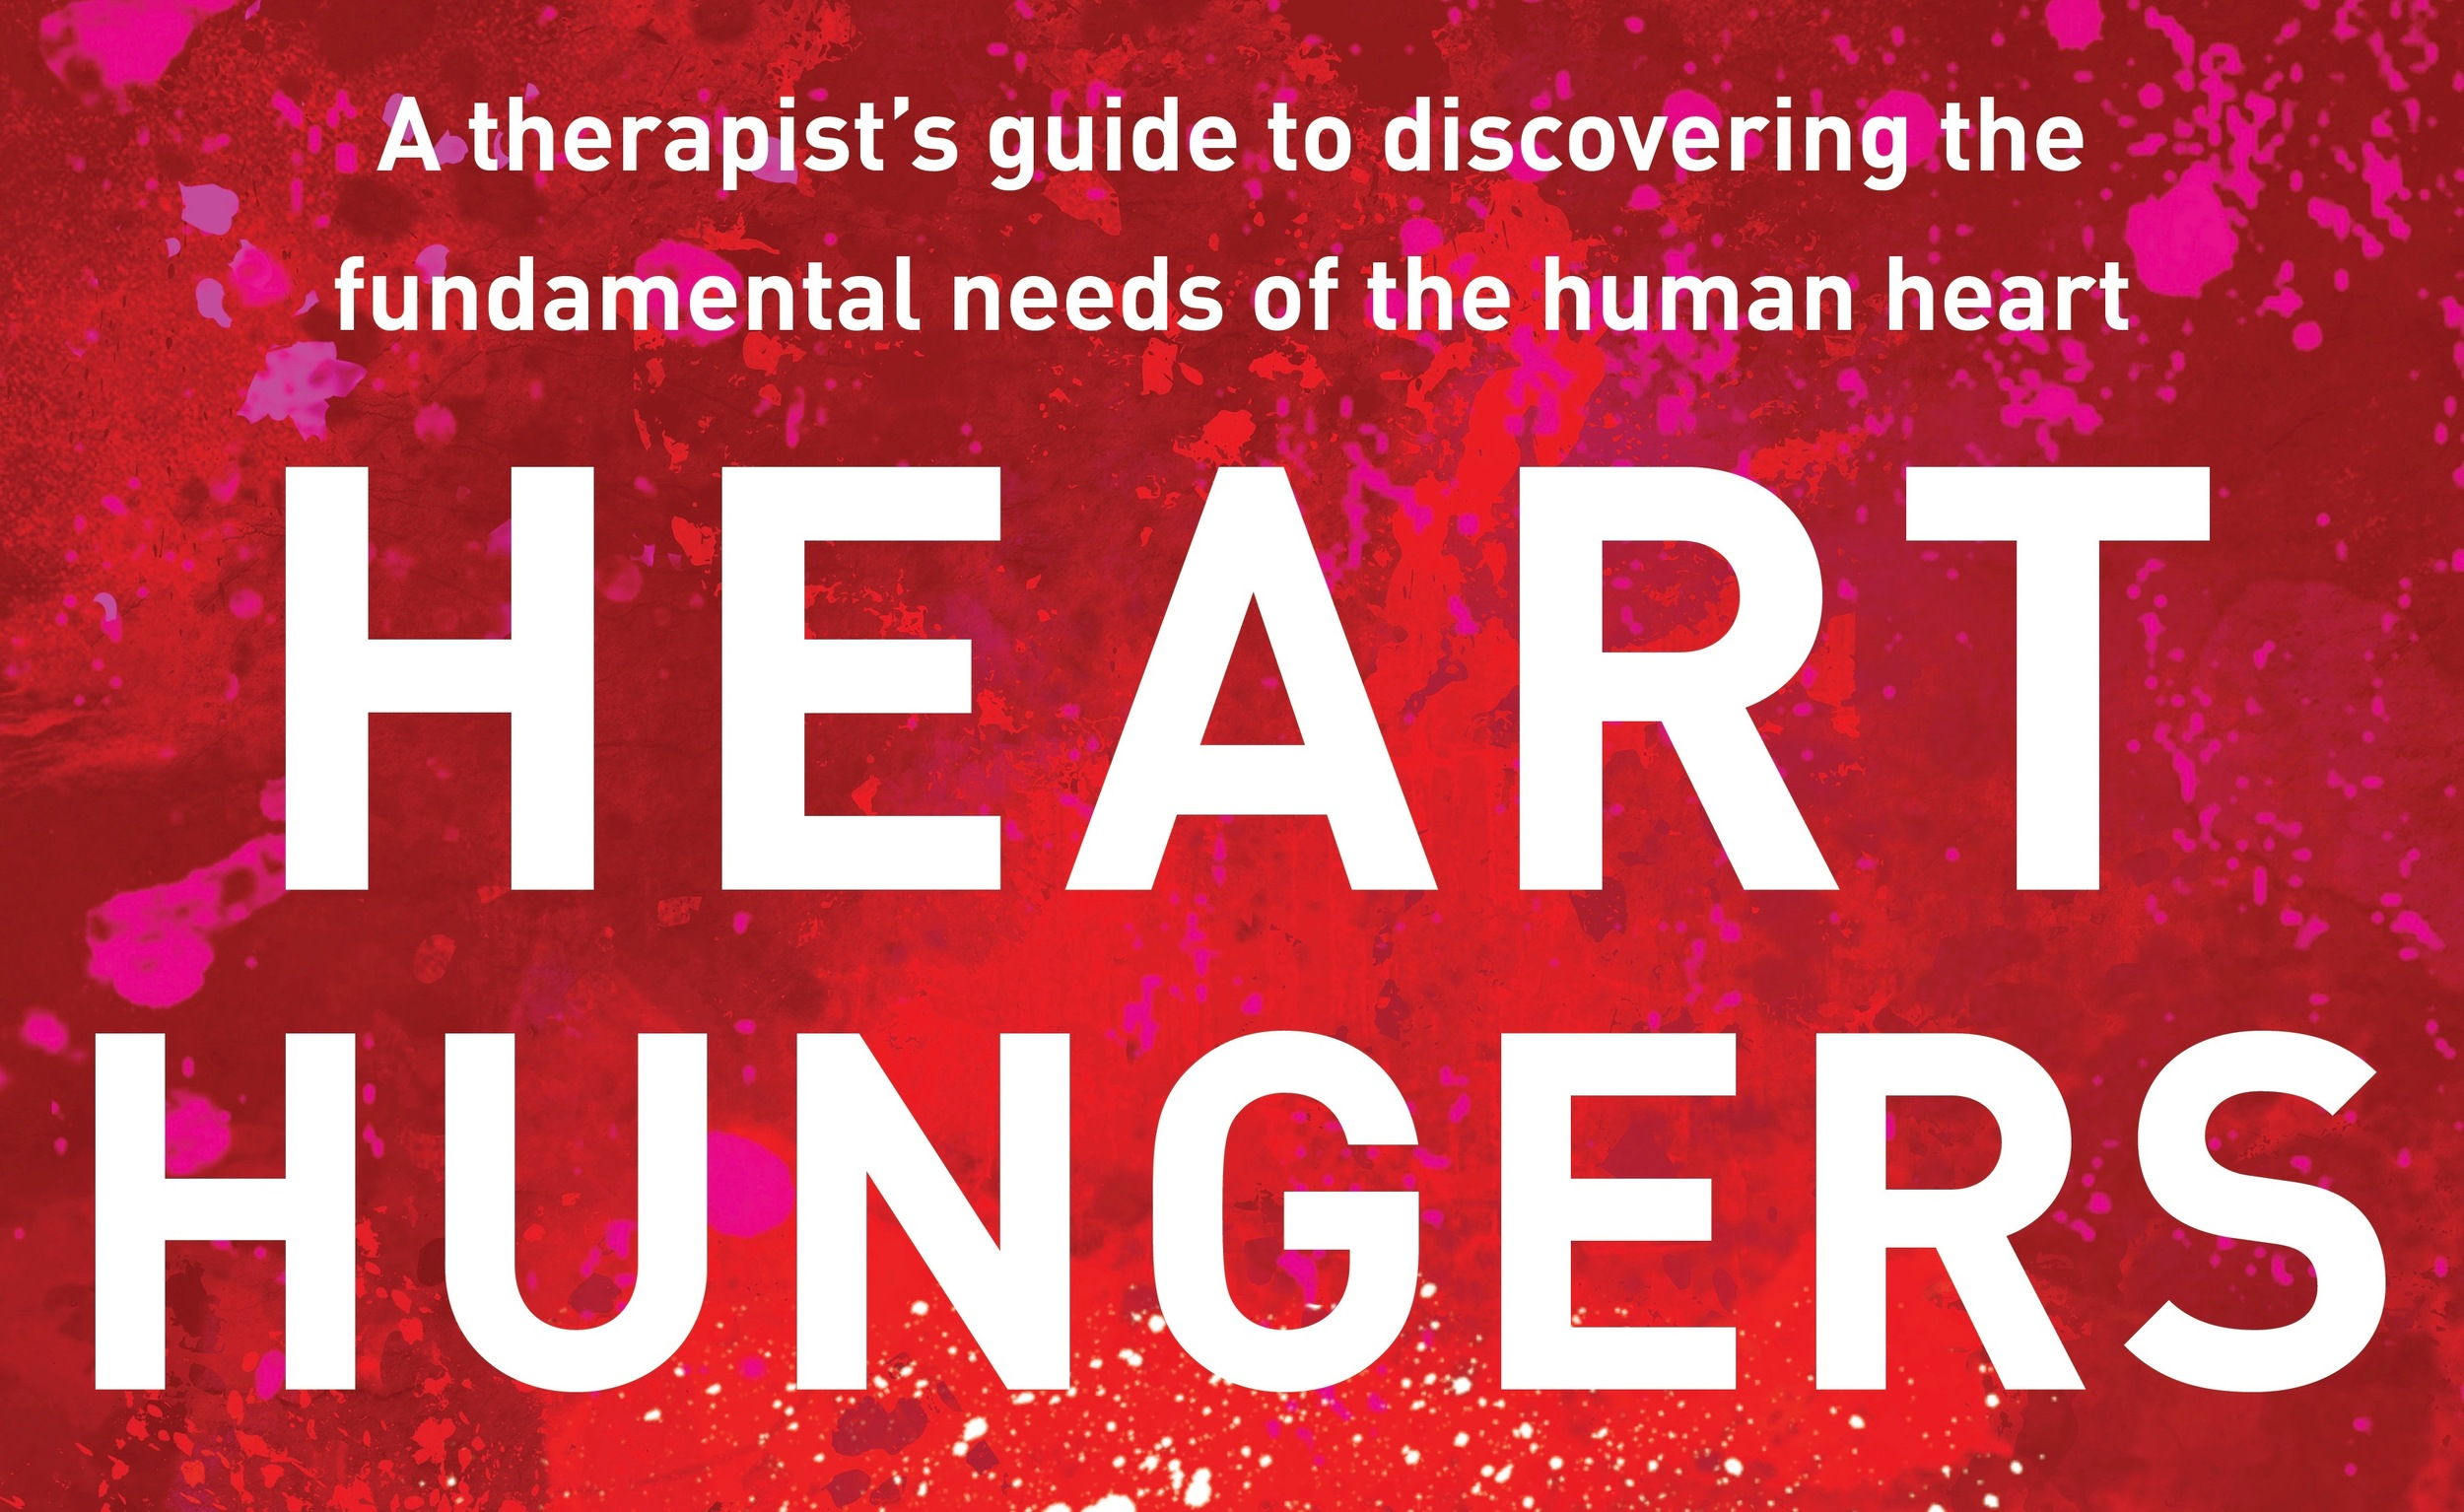 Heart Hungers_cropped (1).jpg